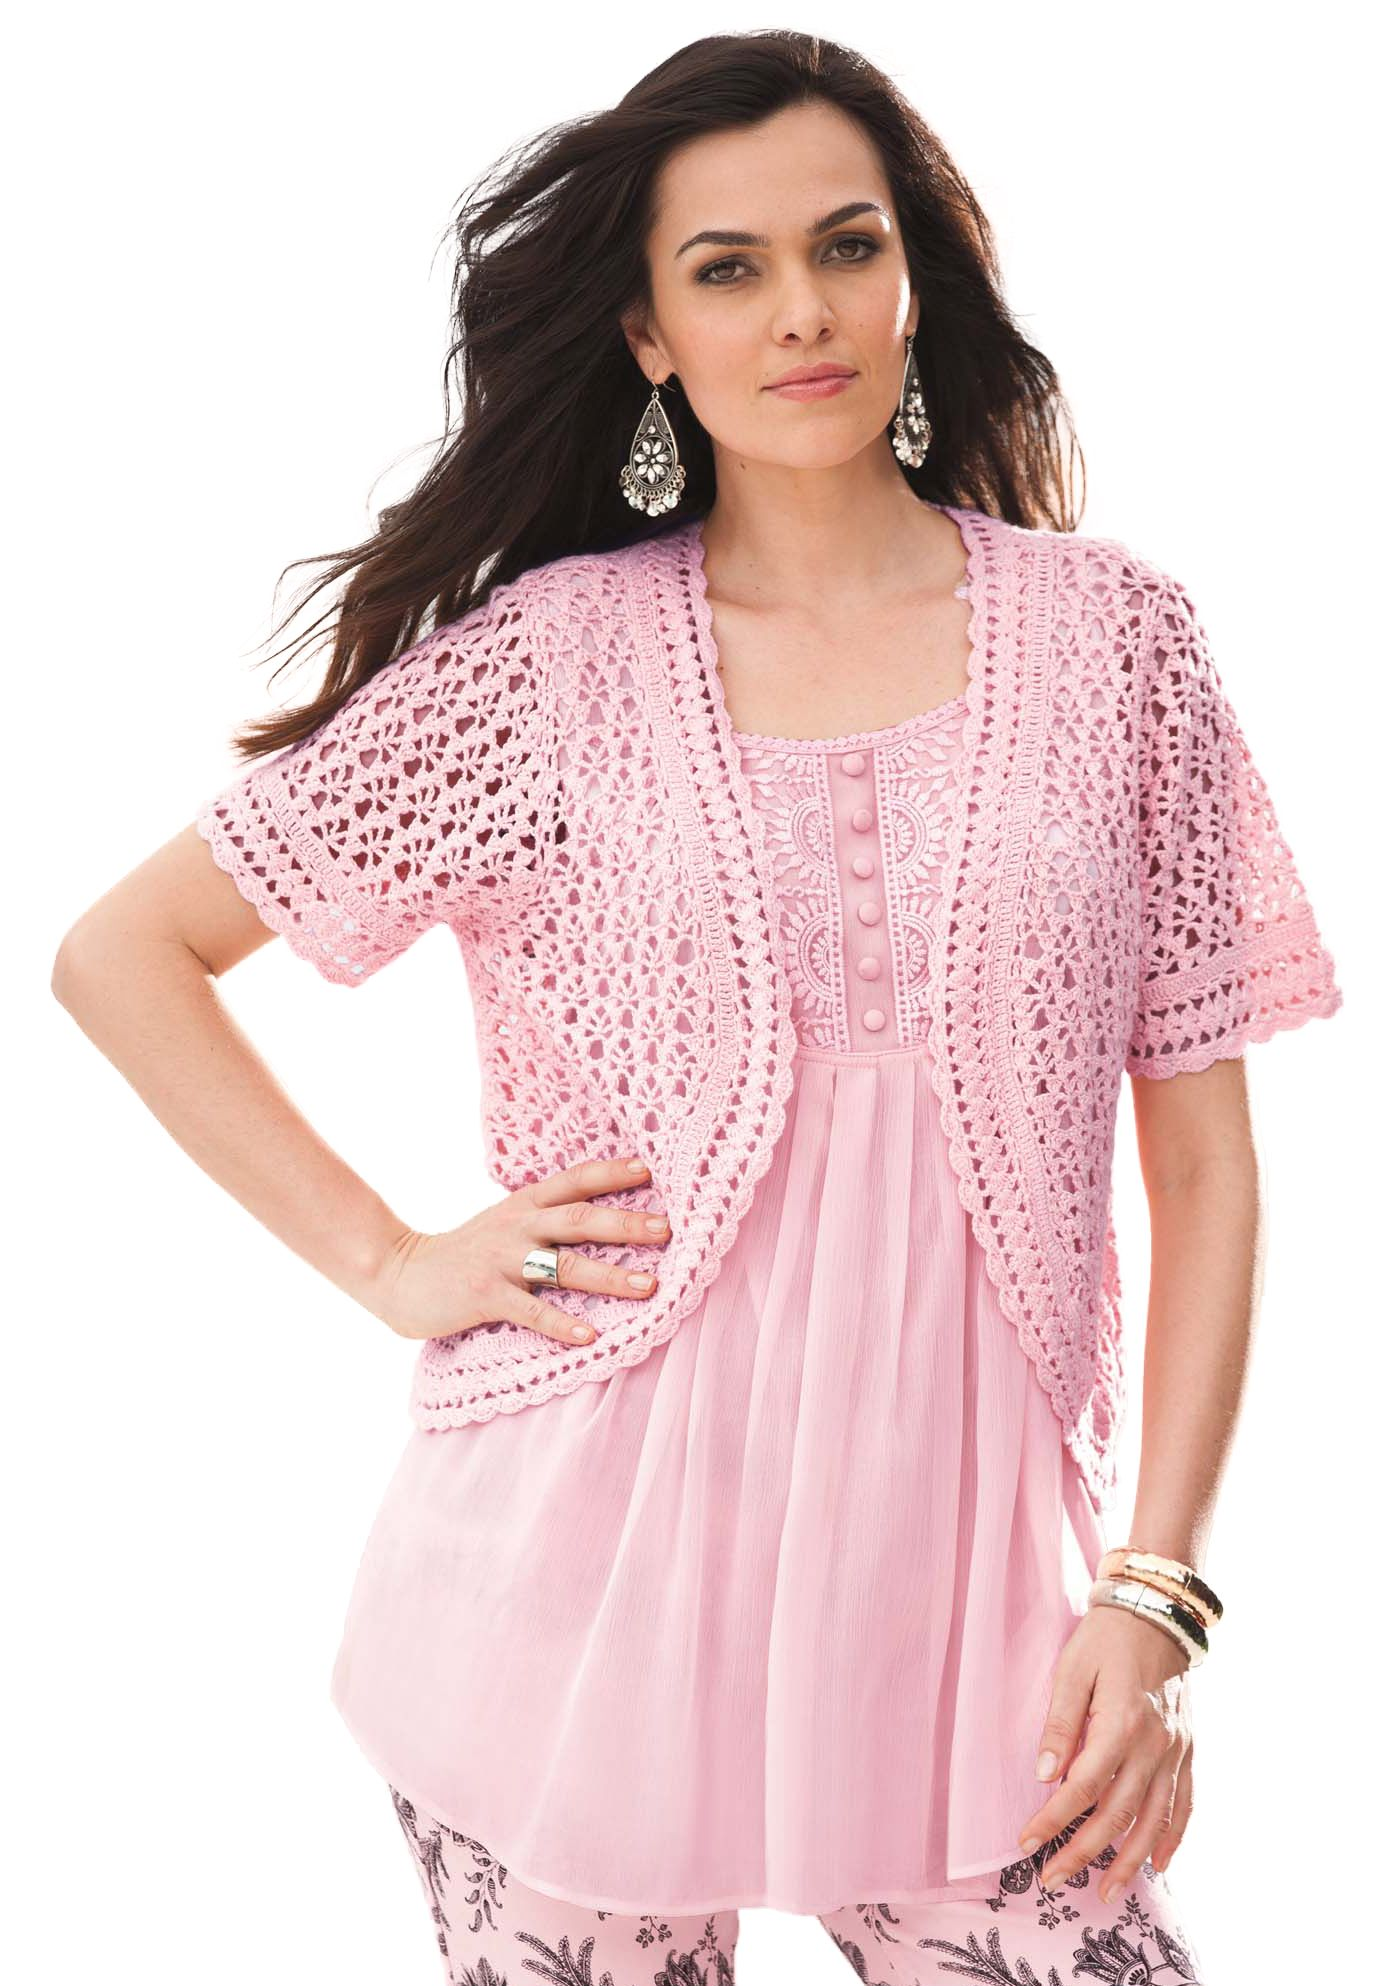 Plus Size Clothing - Fashion for Plus Size women at Roaman\'s ...